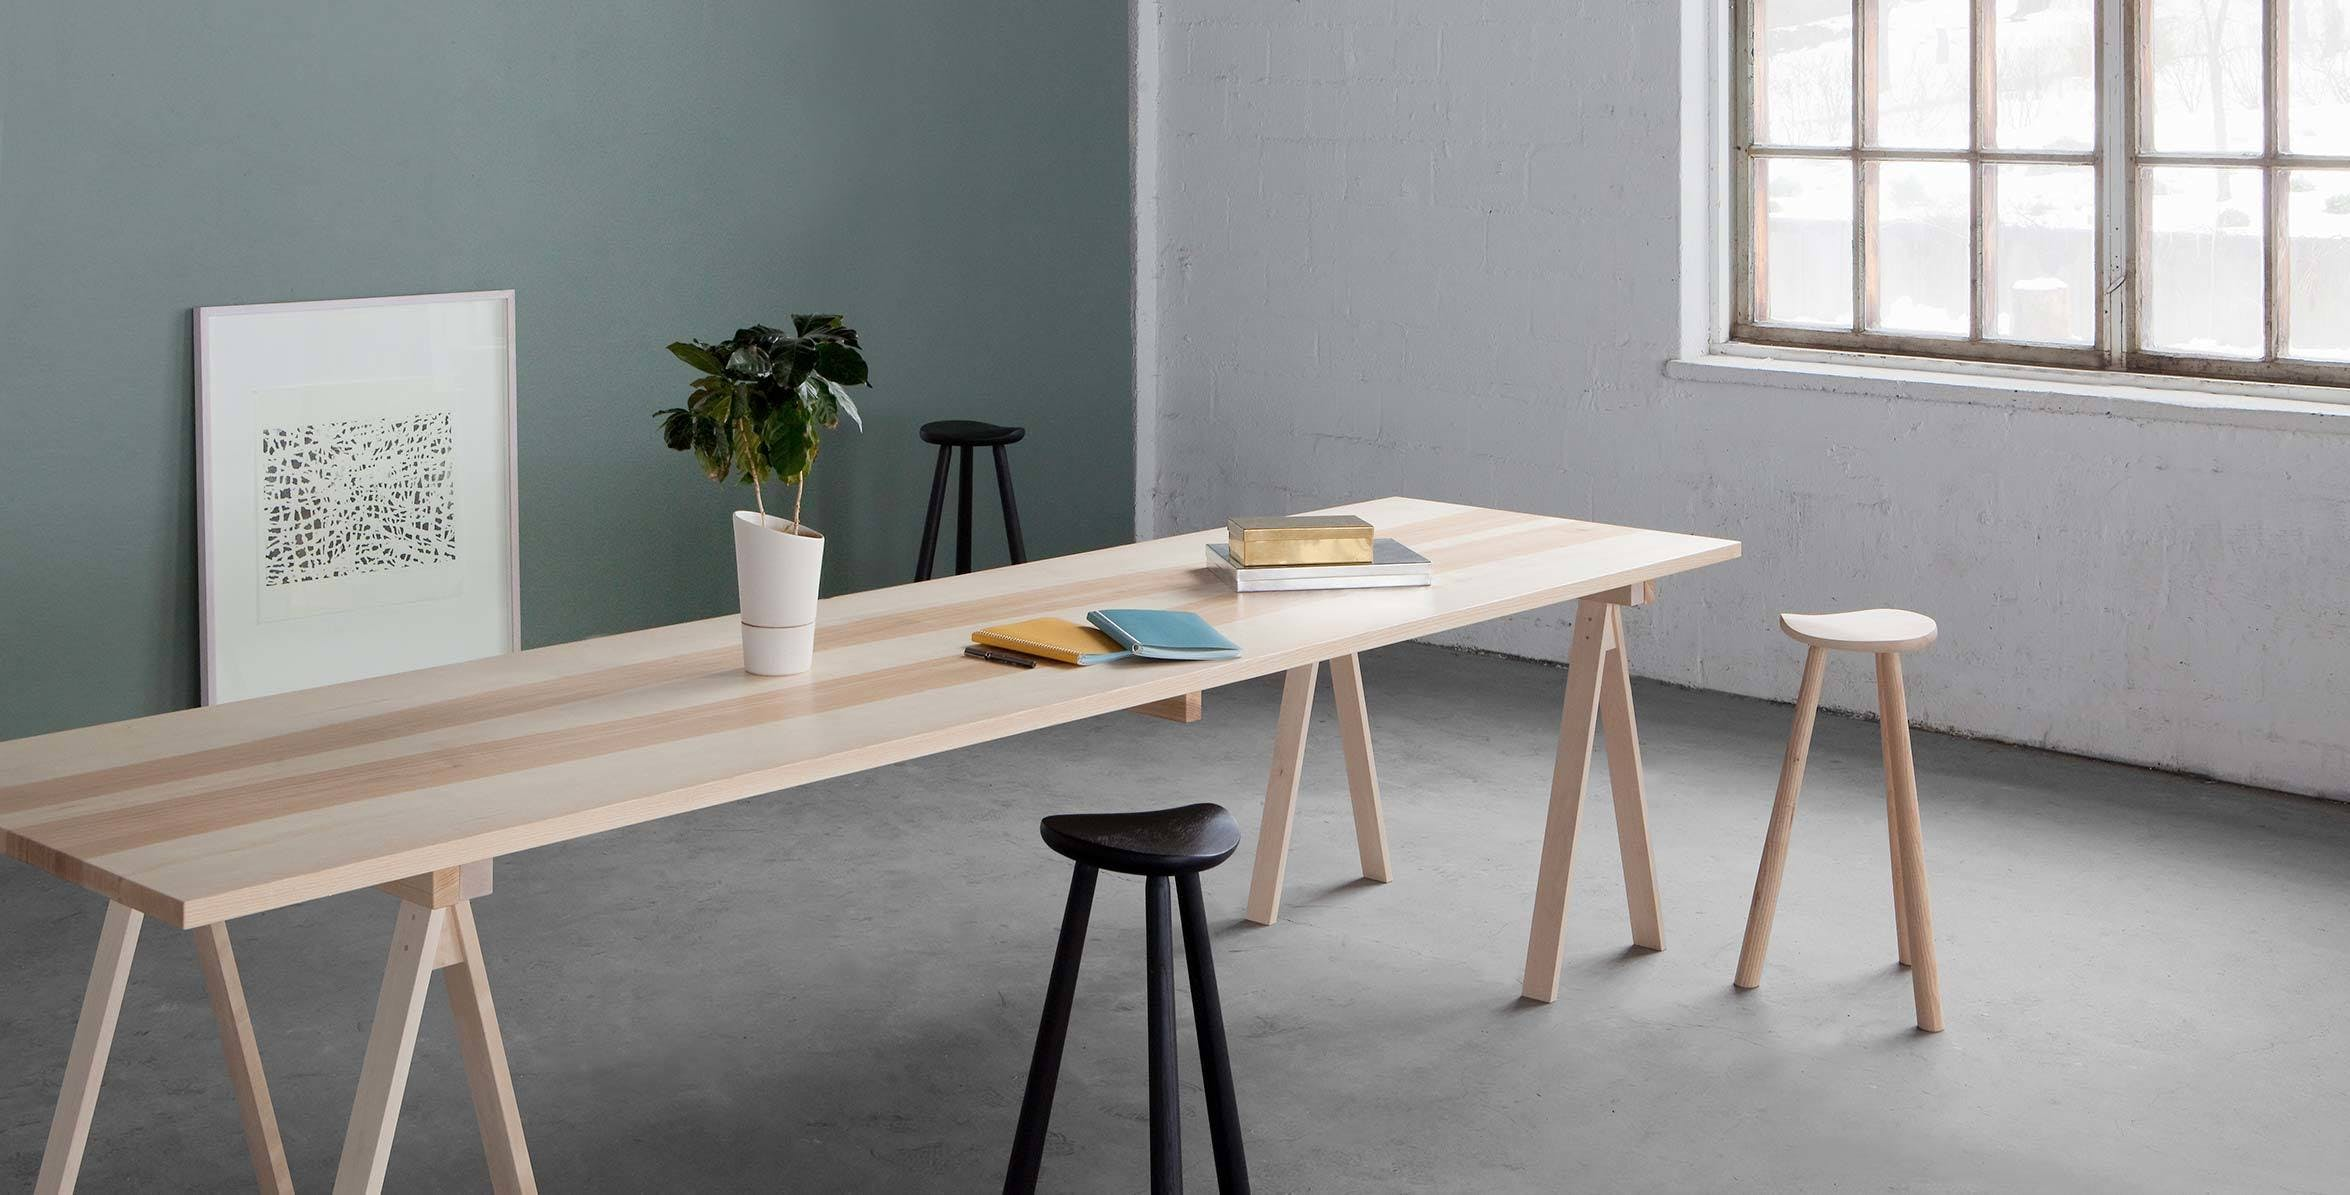 Nikari Furniture Finnish Design